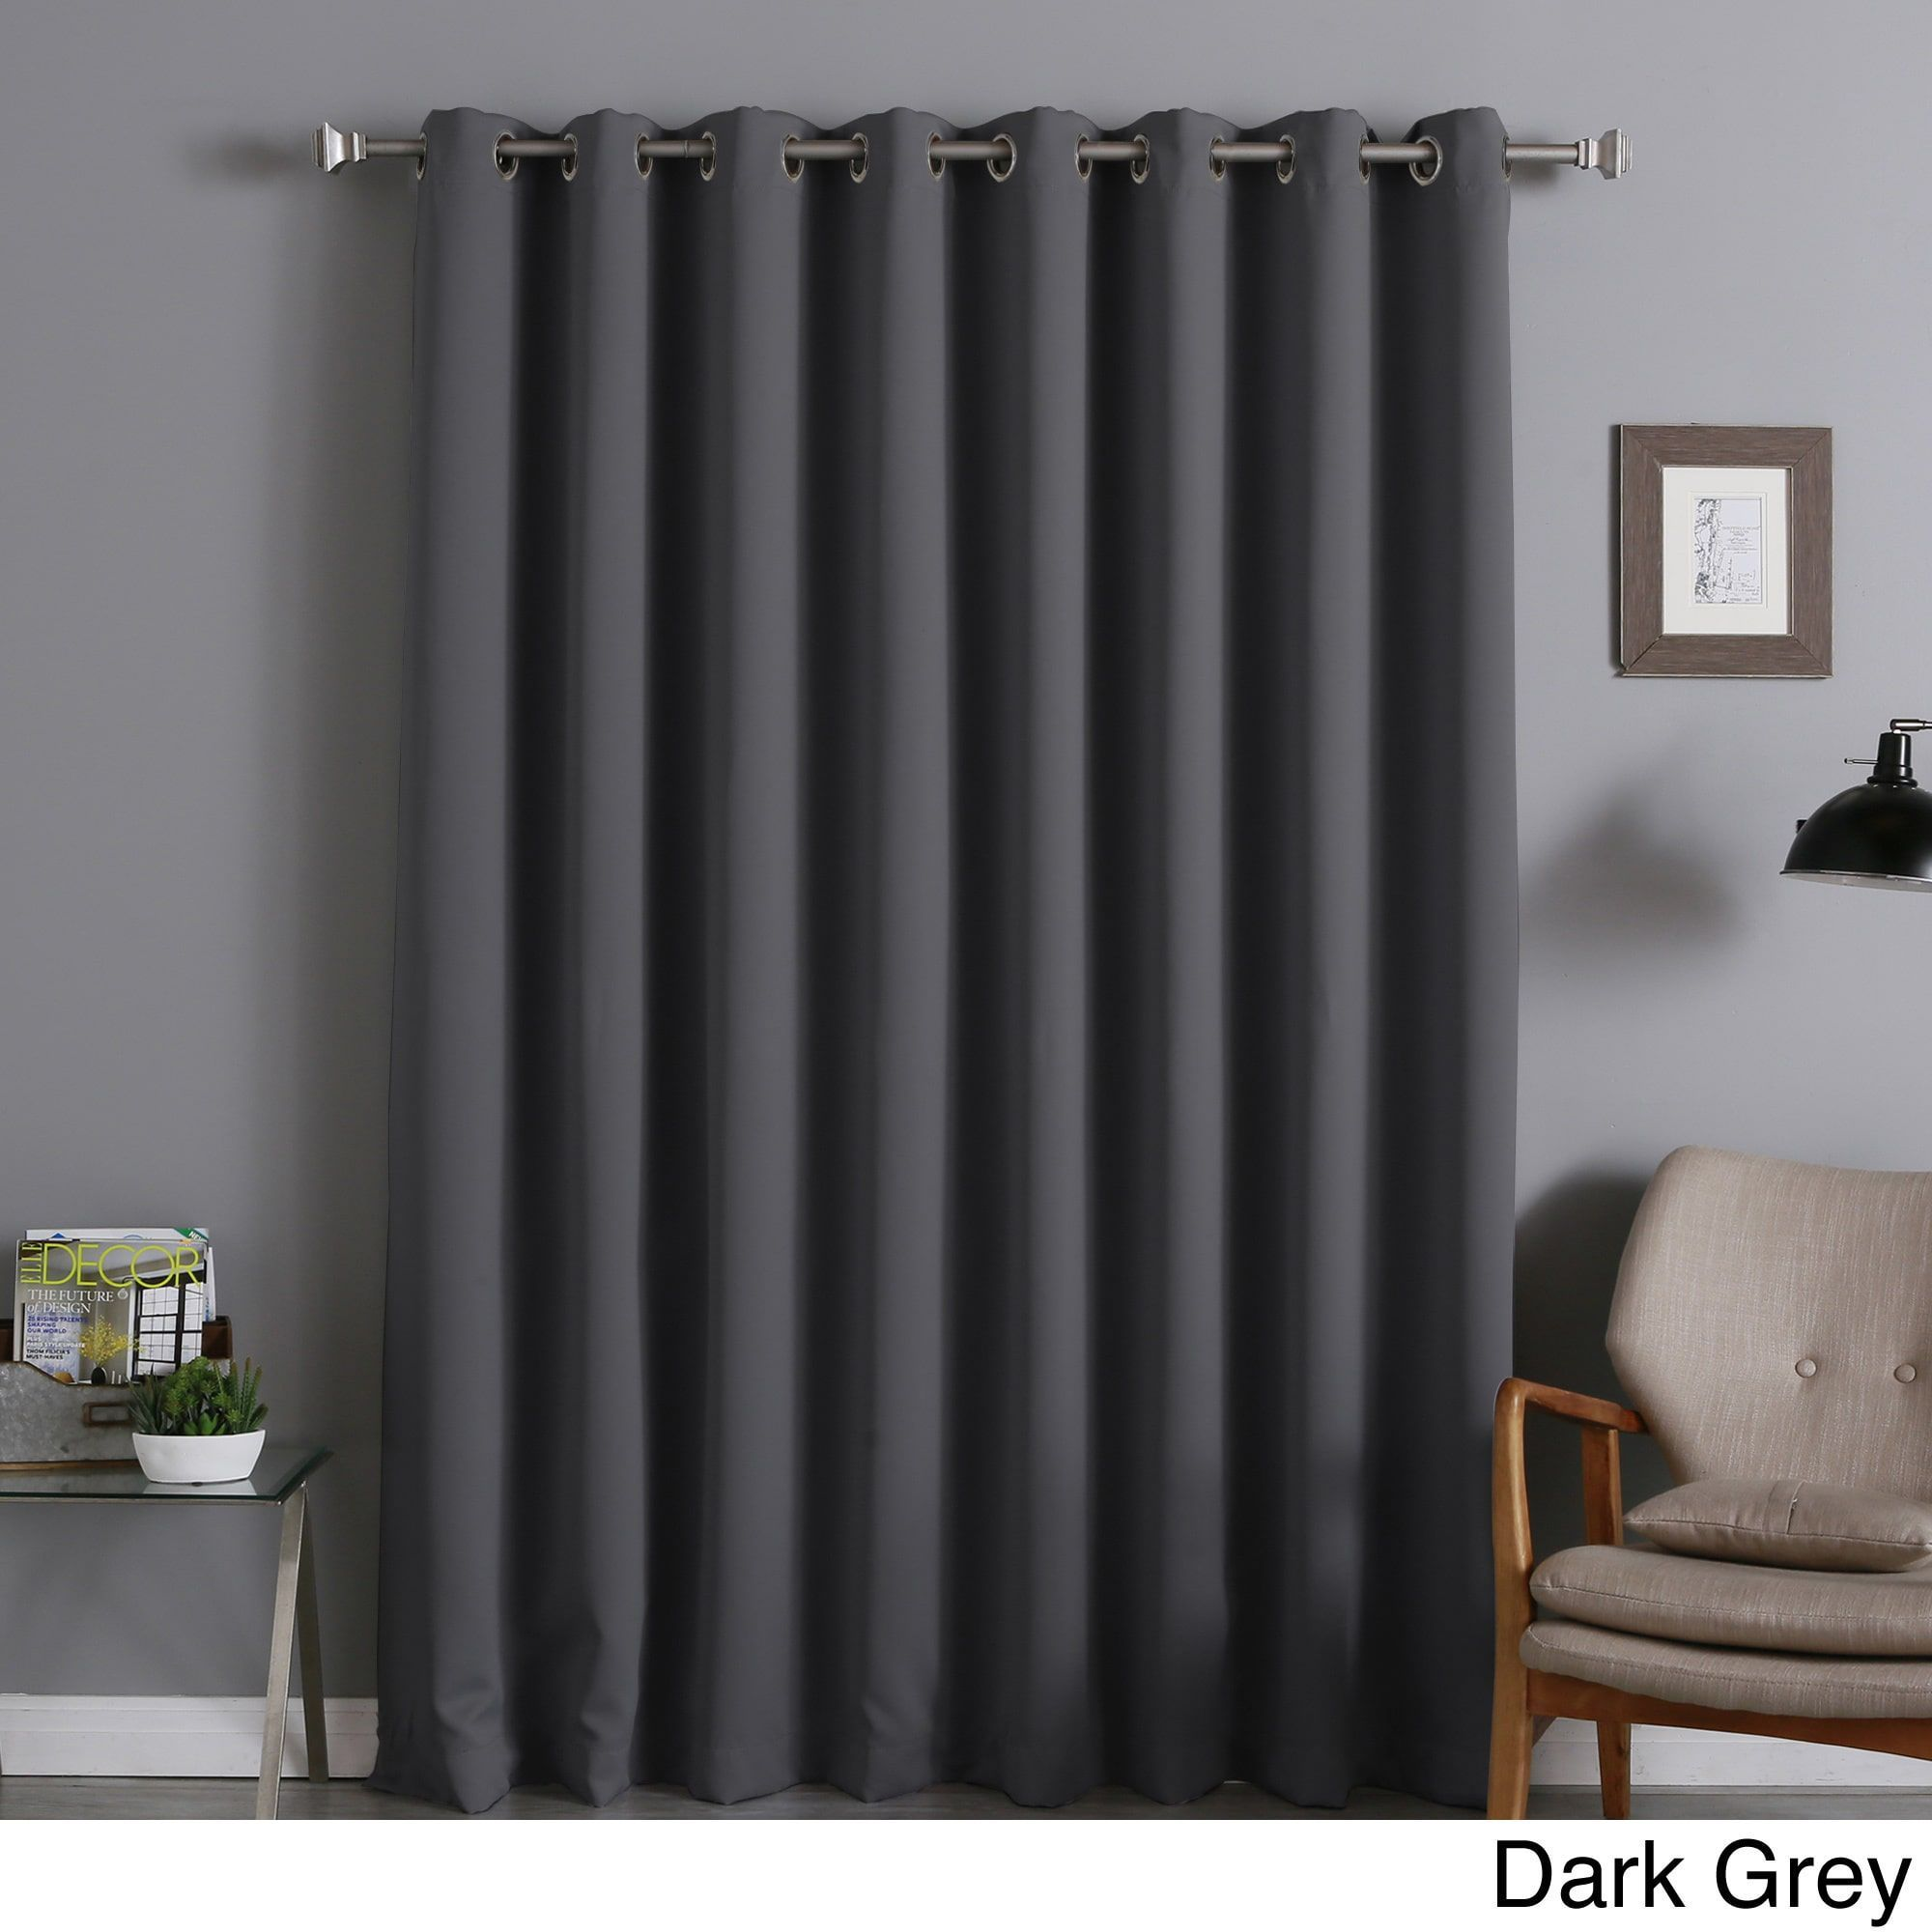 Aurora Home Extra Width Thermal Insulated 96 Inch Blackout Curtain Panel